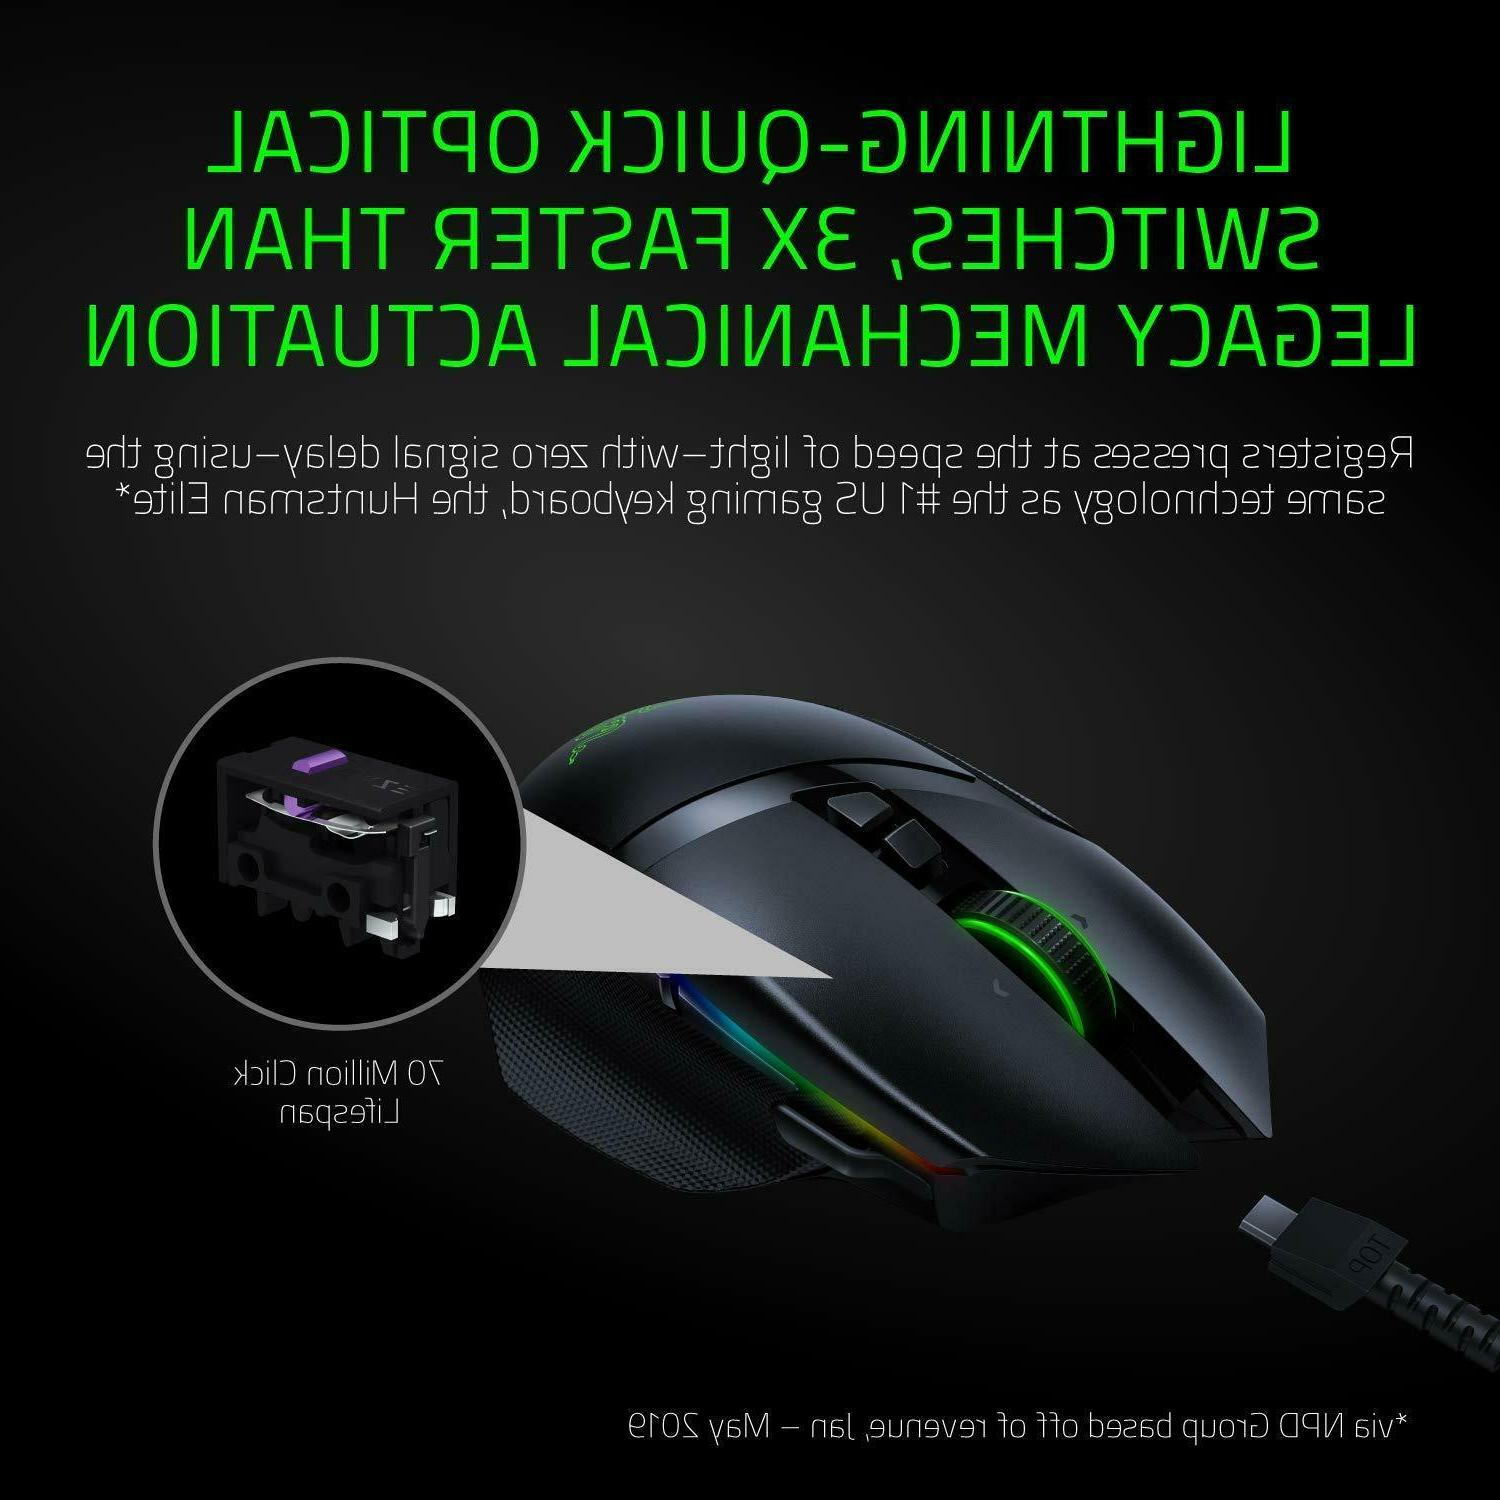 NEW Hyperspeed Wireless Mouse: Fastest